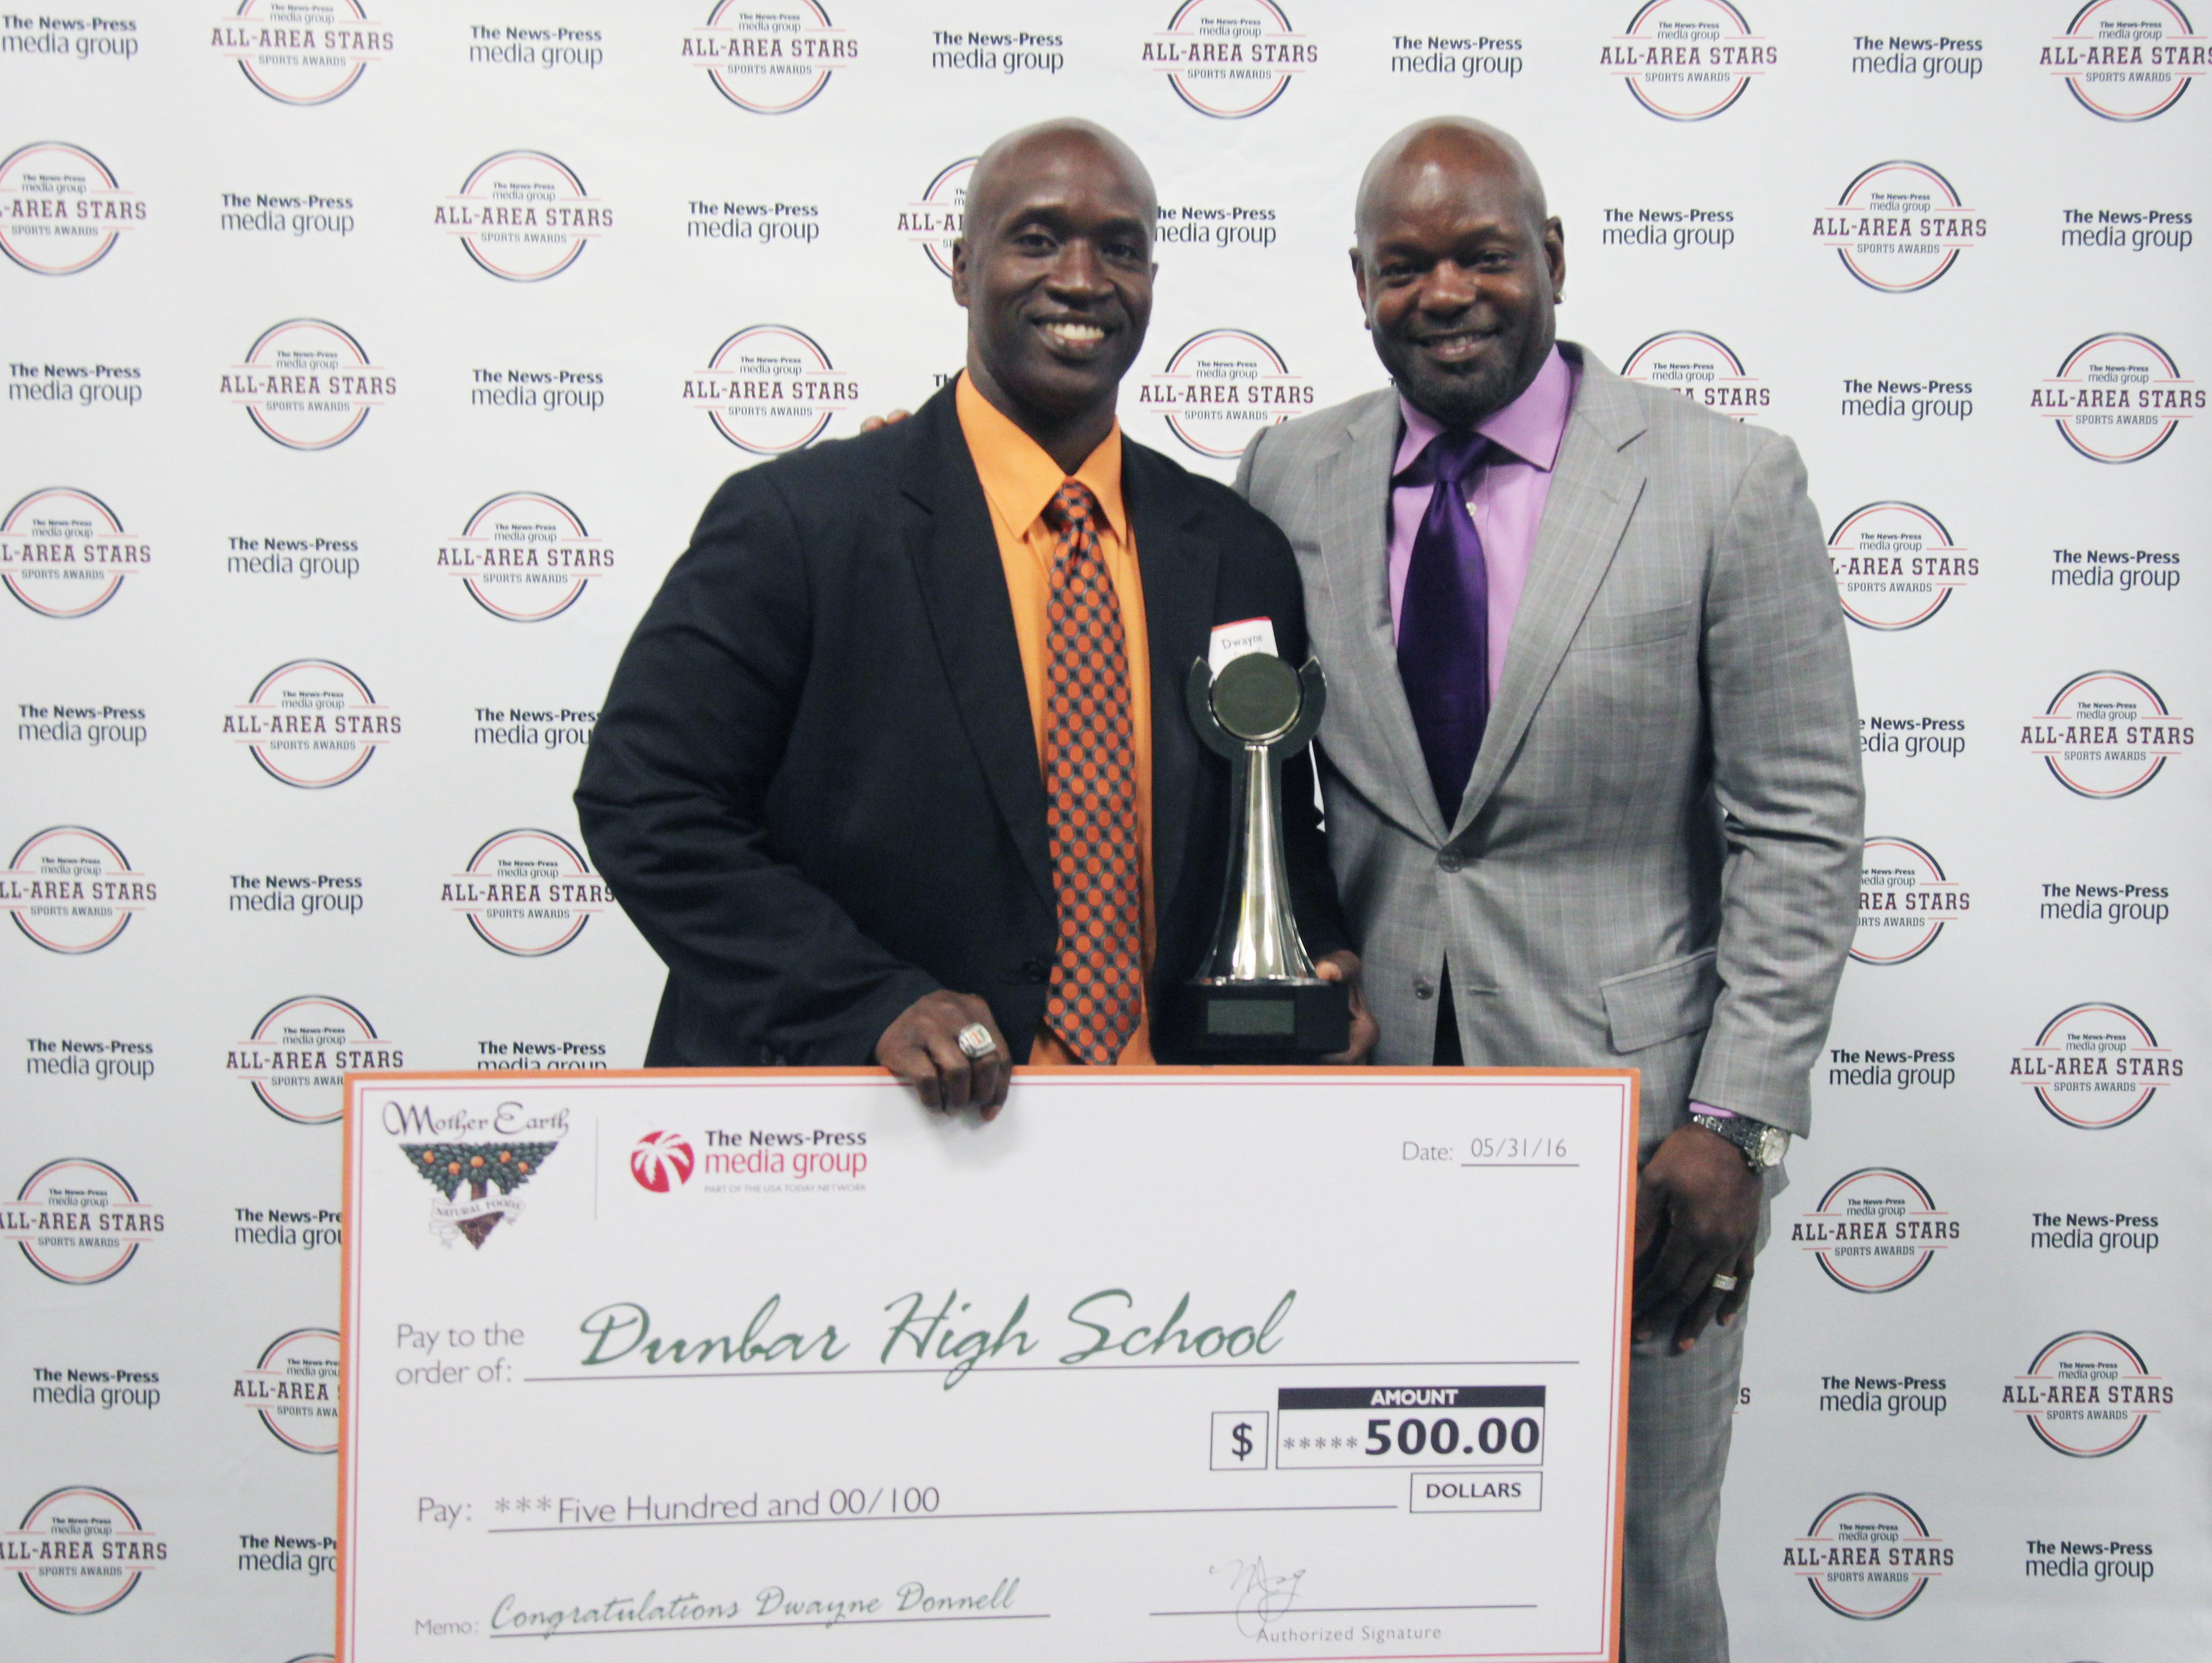 Dwayne Donnell, of Dunbar High School, poses with Emmitt Smith after being named Coach of the Year during the All-Area Stars Banquet at Germain Arena on Tuesday.